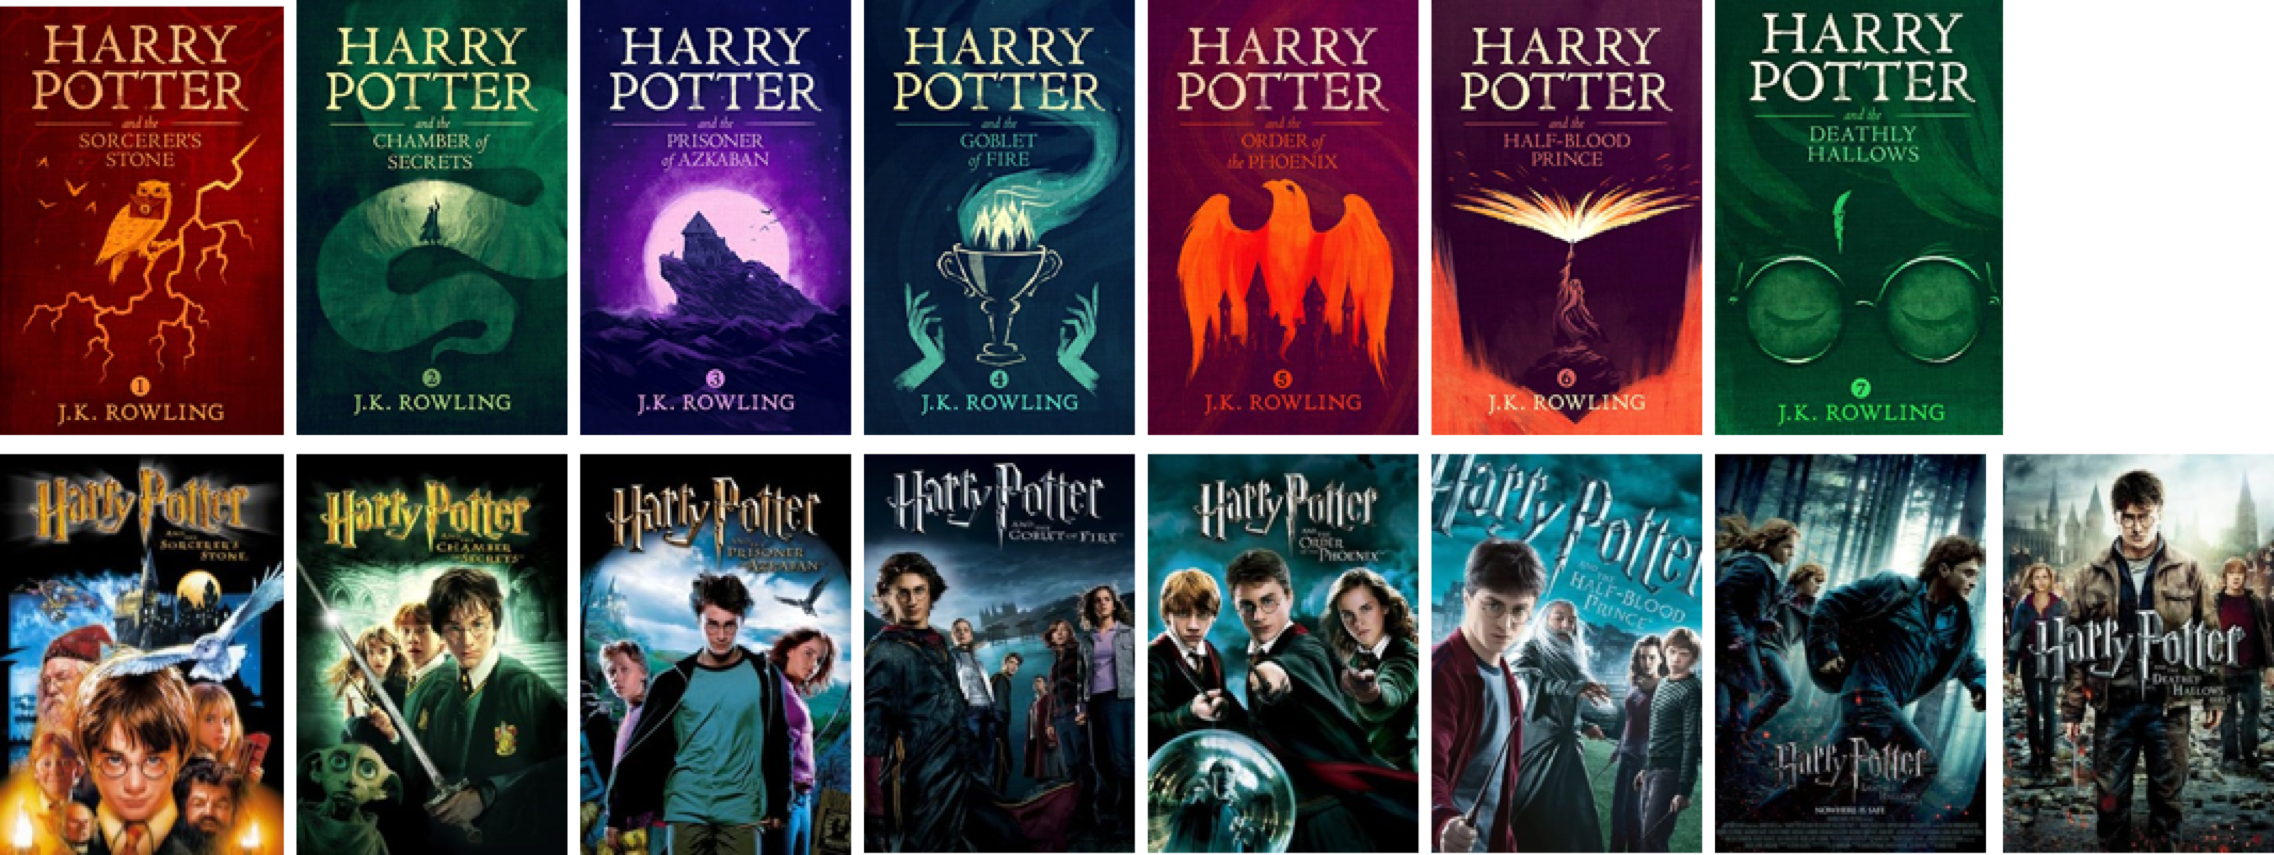 Harry Potter Movies In Order Typically Kids From Age 7 To 9 Start By Vinod Sharma Medium